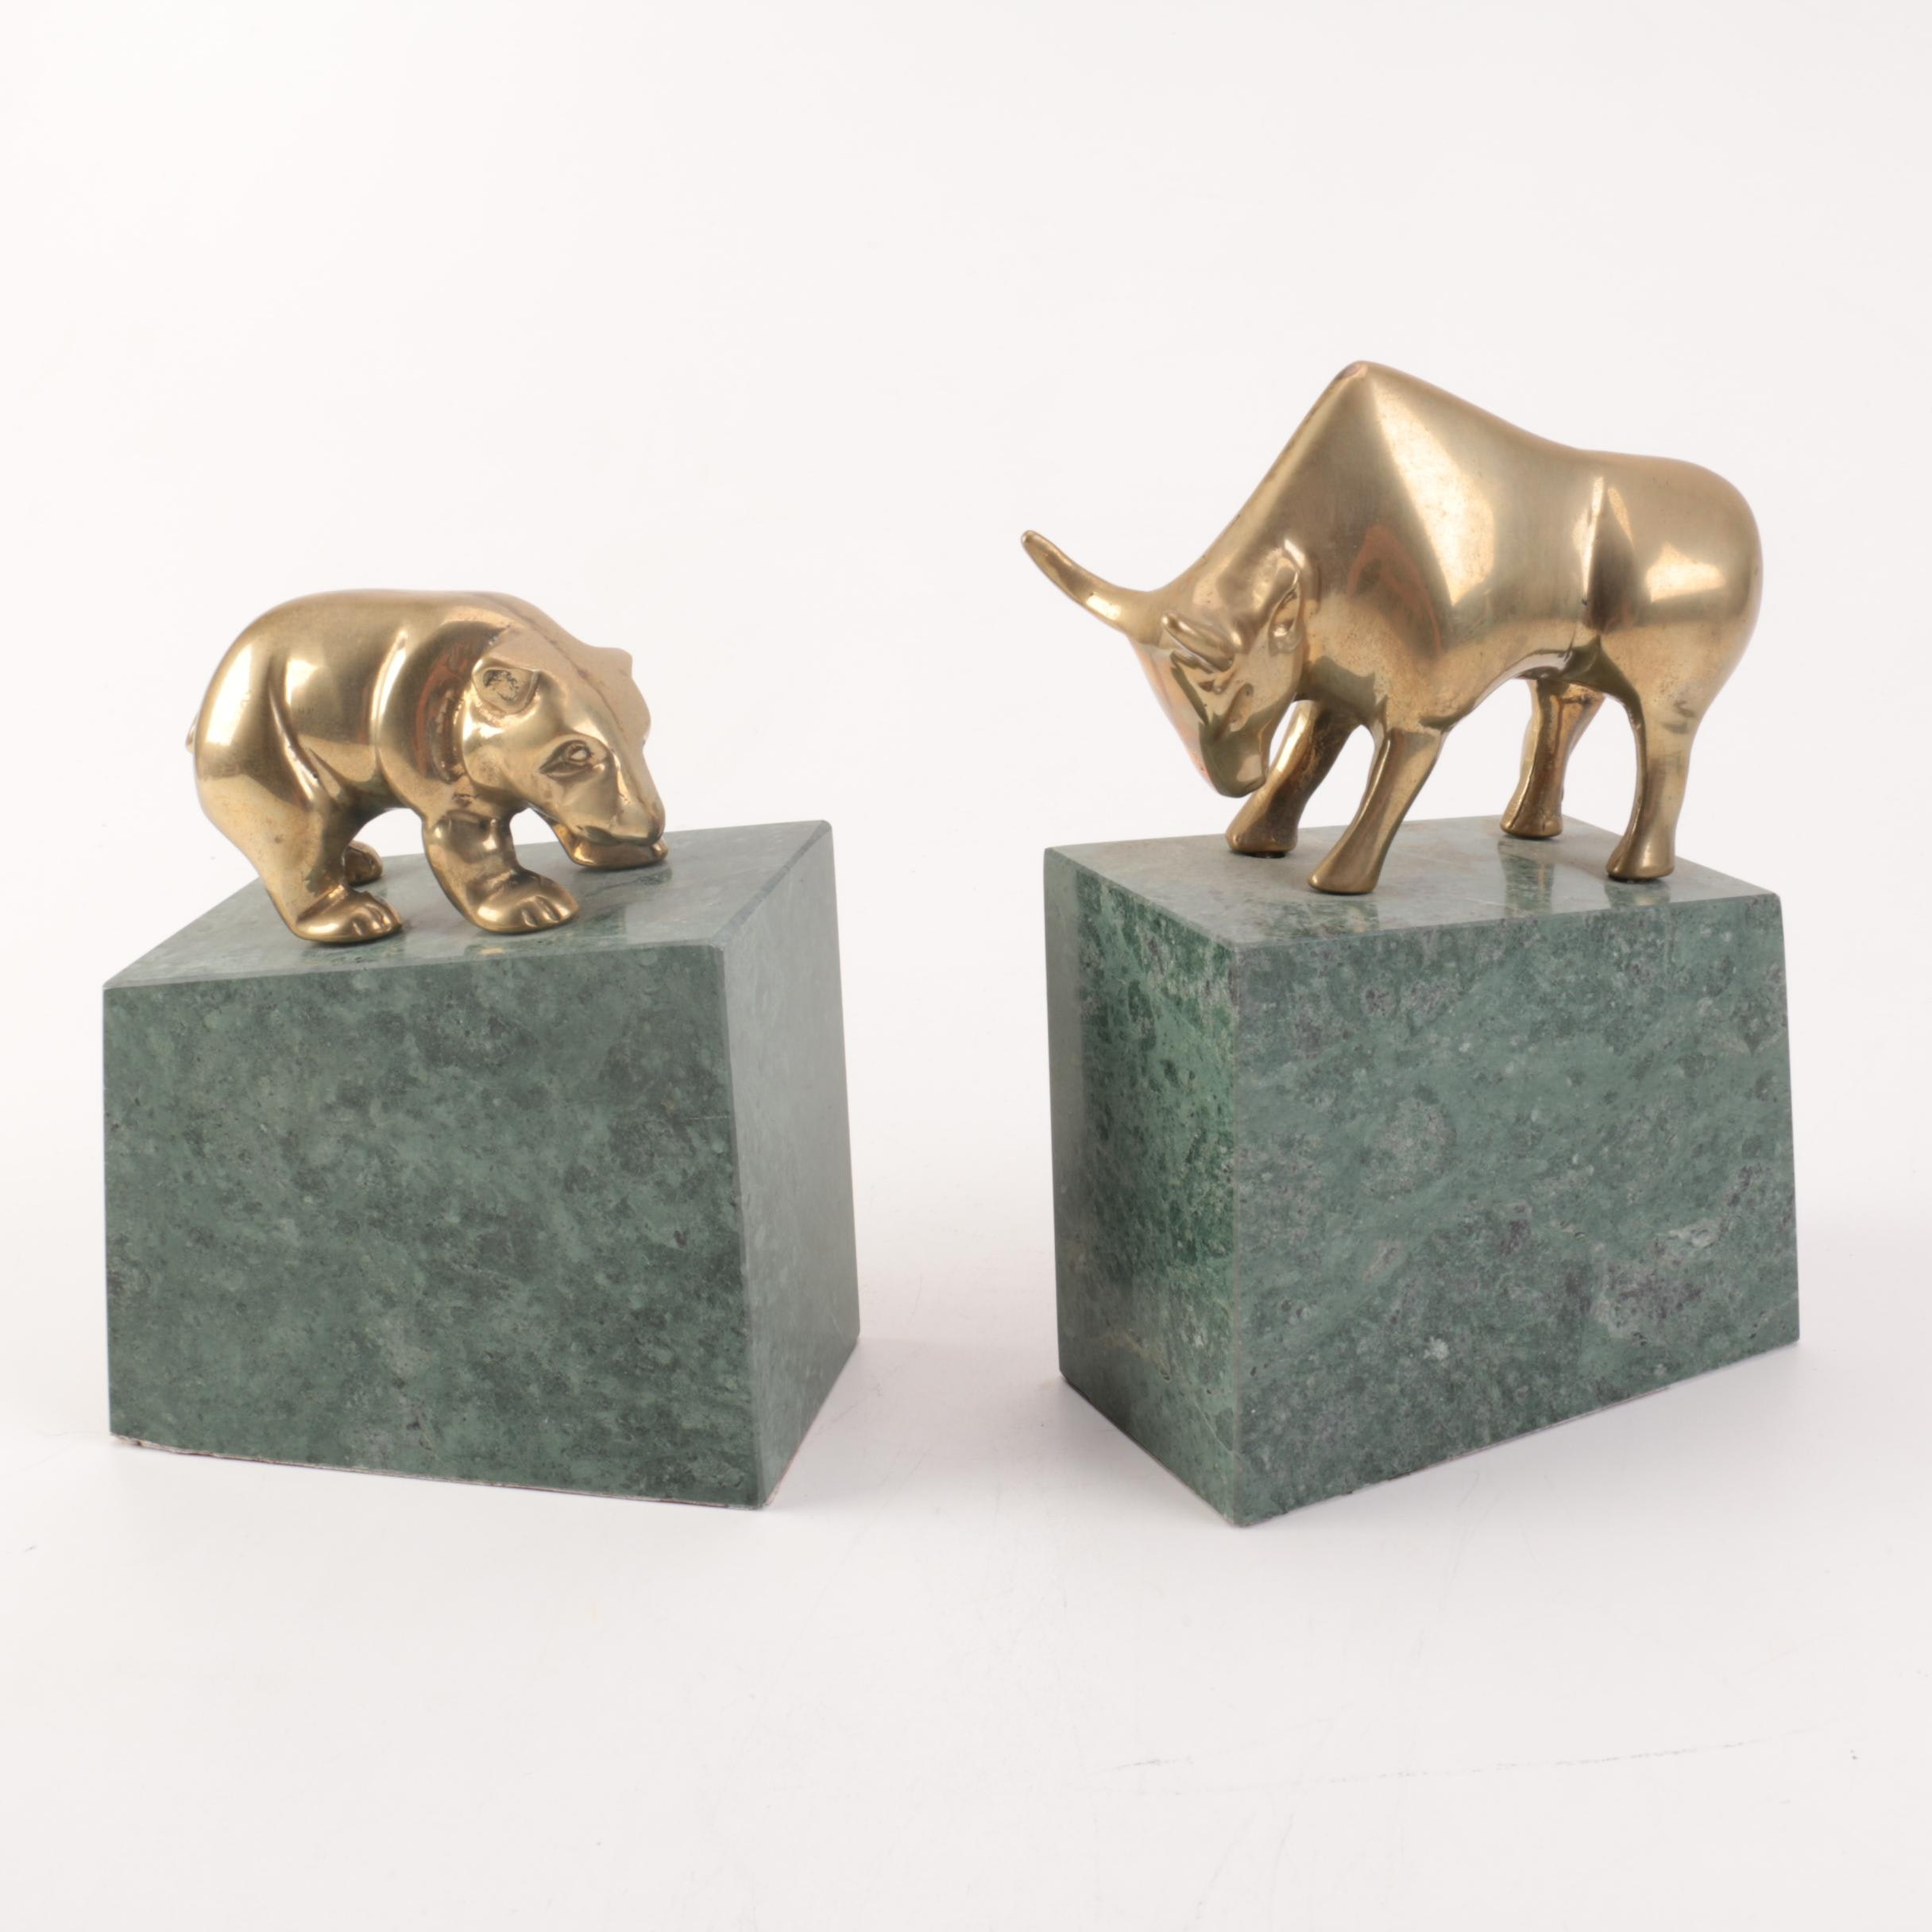 Brass Bookends from Andrea by Sadek